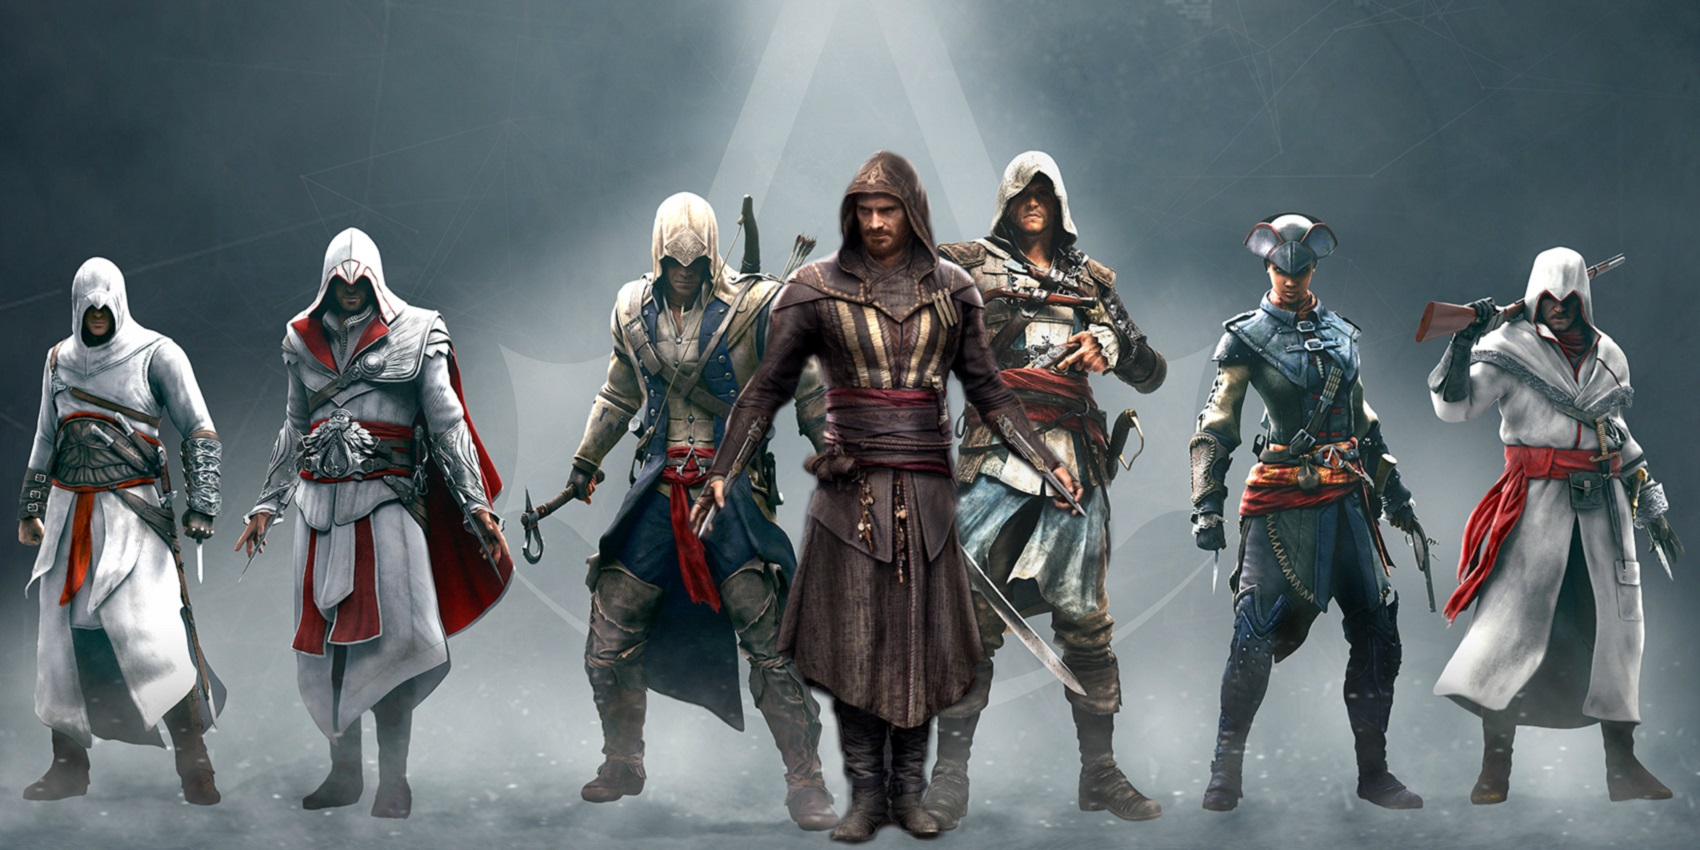 Images of Assassin's Creed | 1700x850